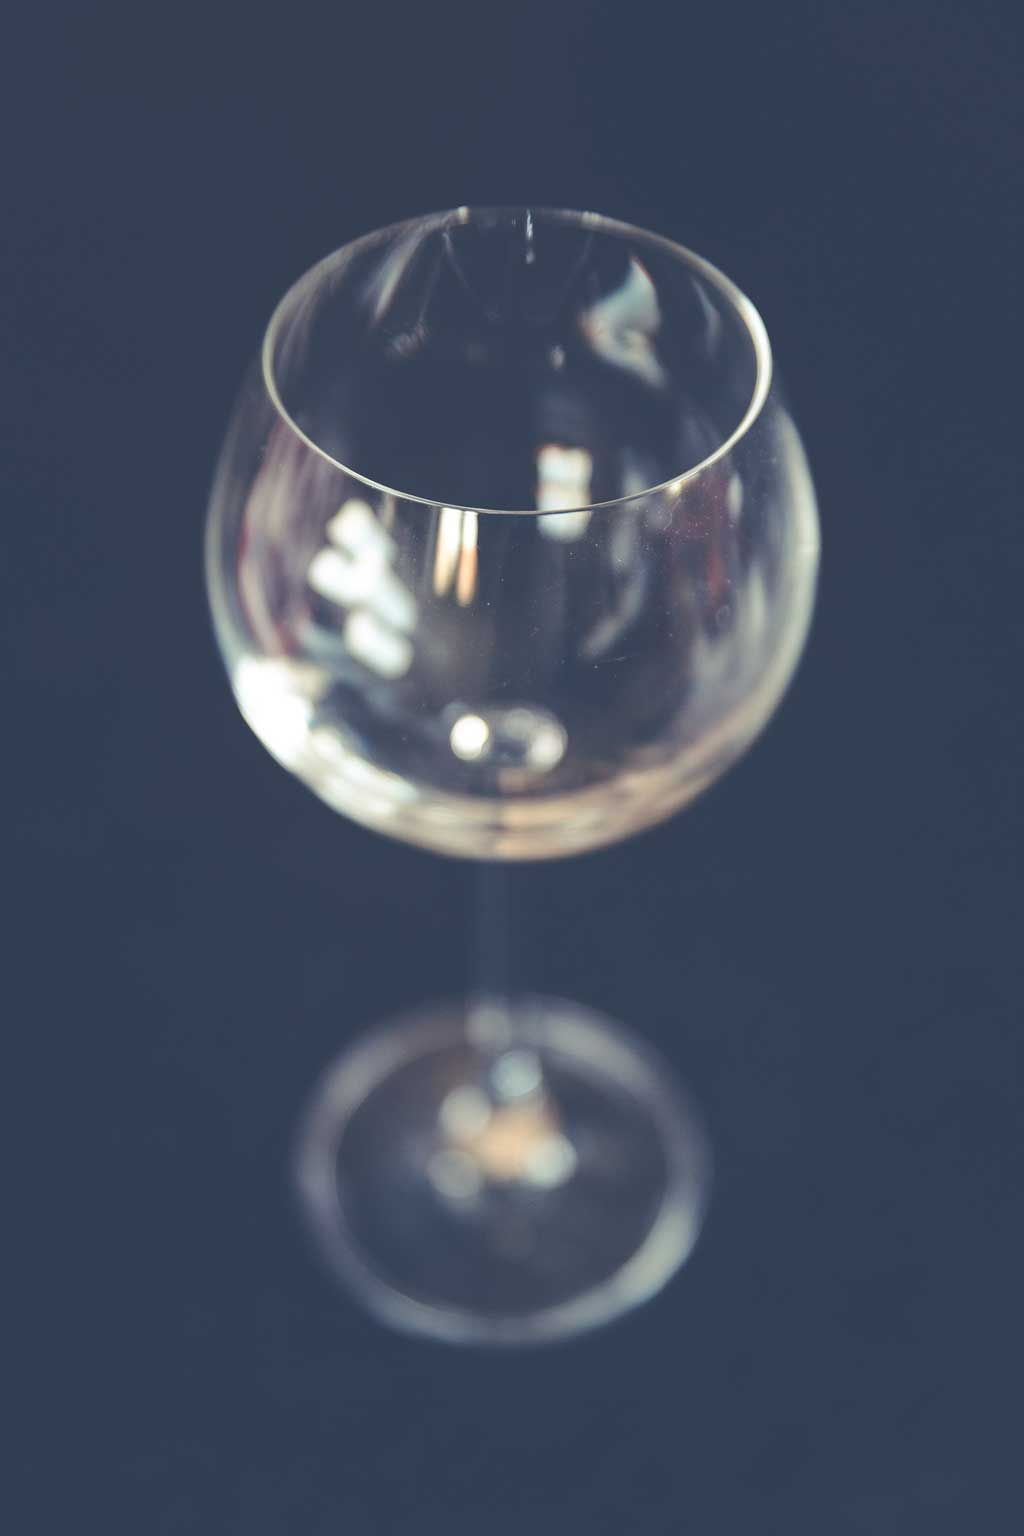 empty wine glass in front of a blue background